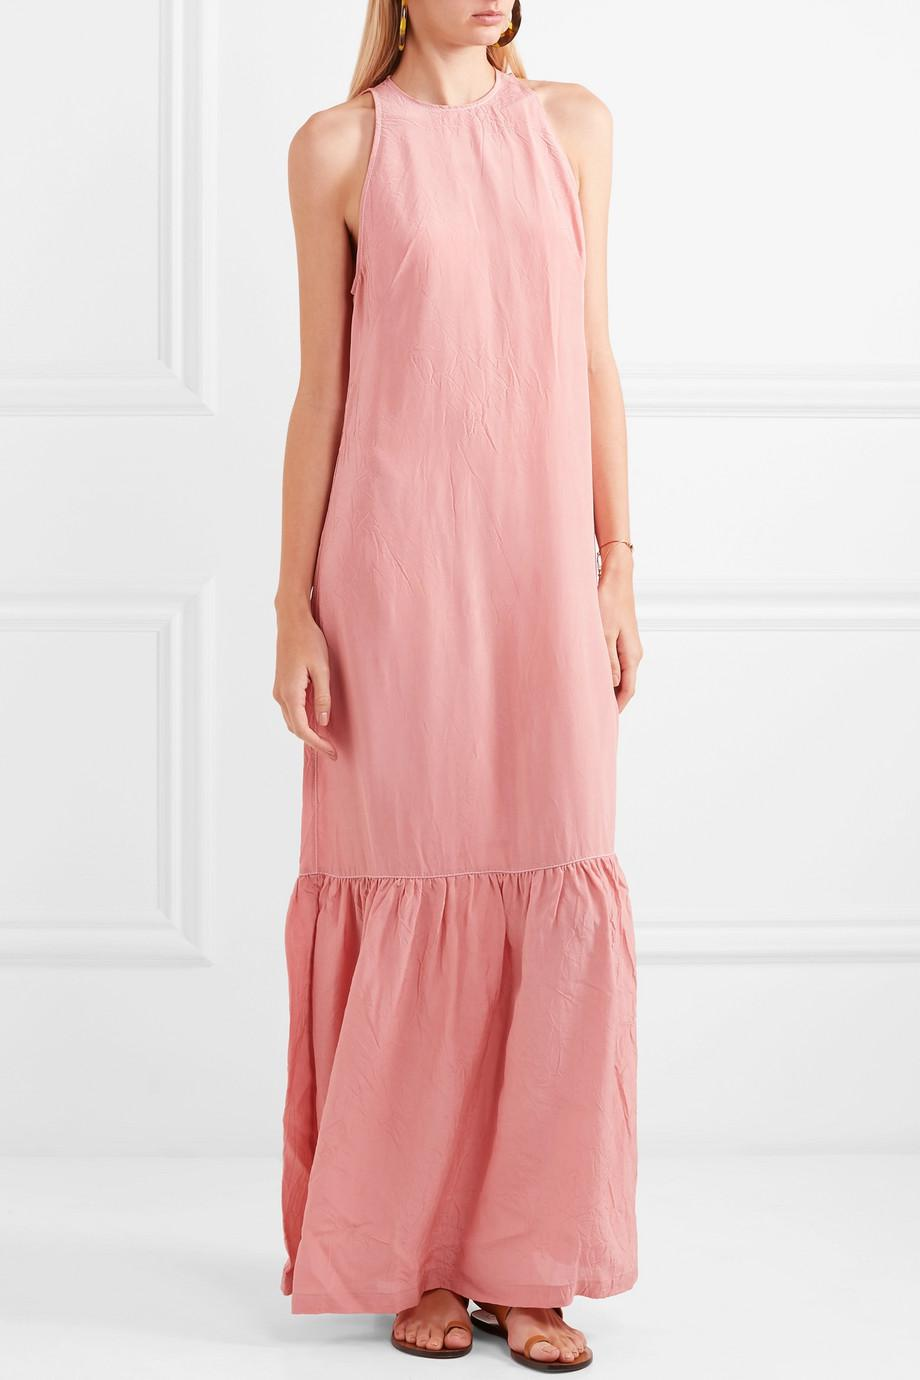 Outlet How Much Ogygia Tiered Satin Maxi Dress - Pink Marios Schwab Outlet Websites Cheap Sale Outlet Store Discount Original 6bk1zP